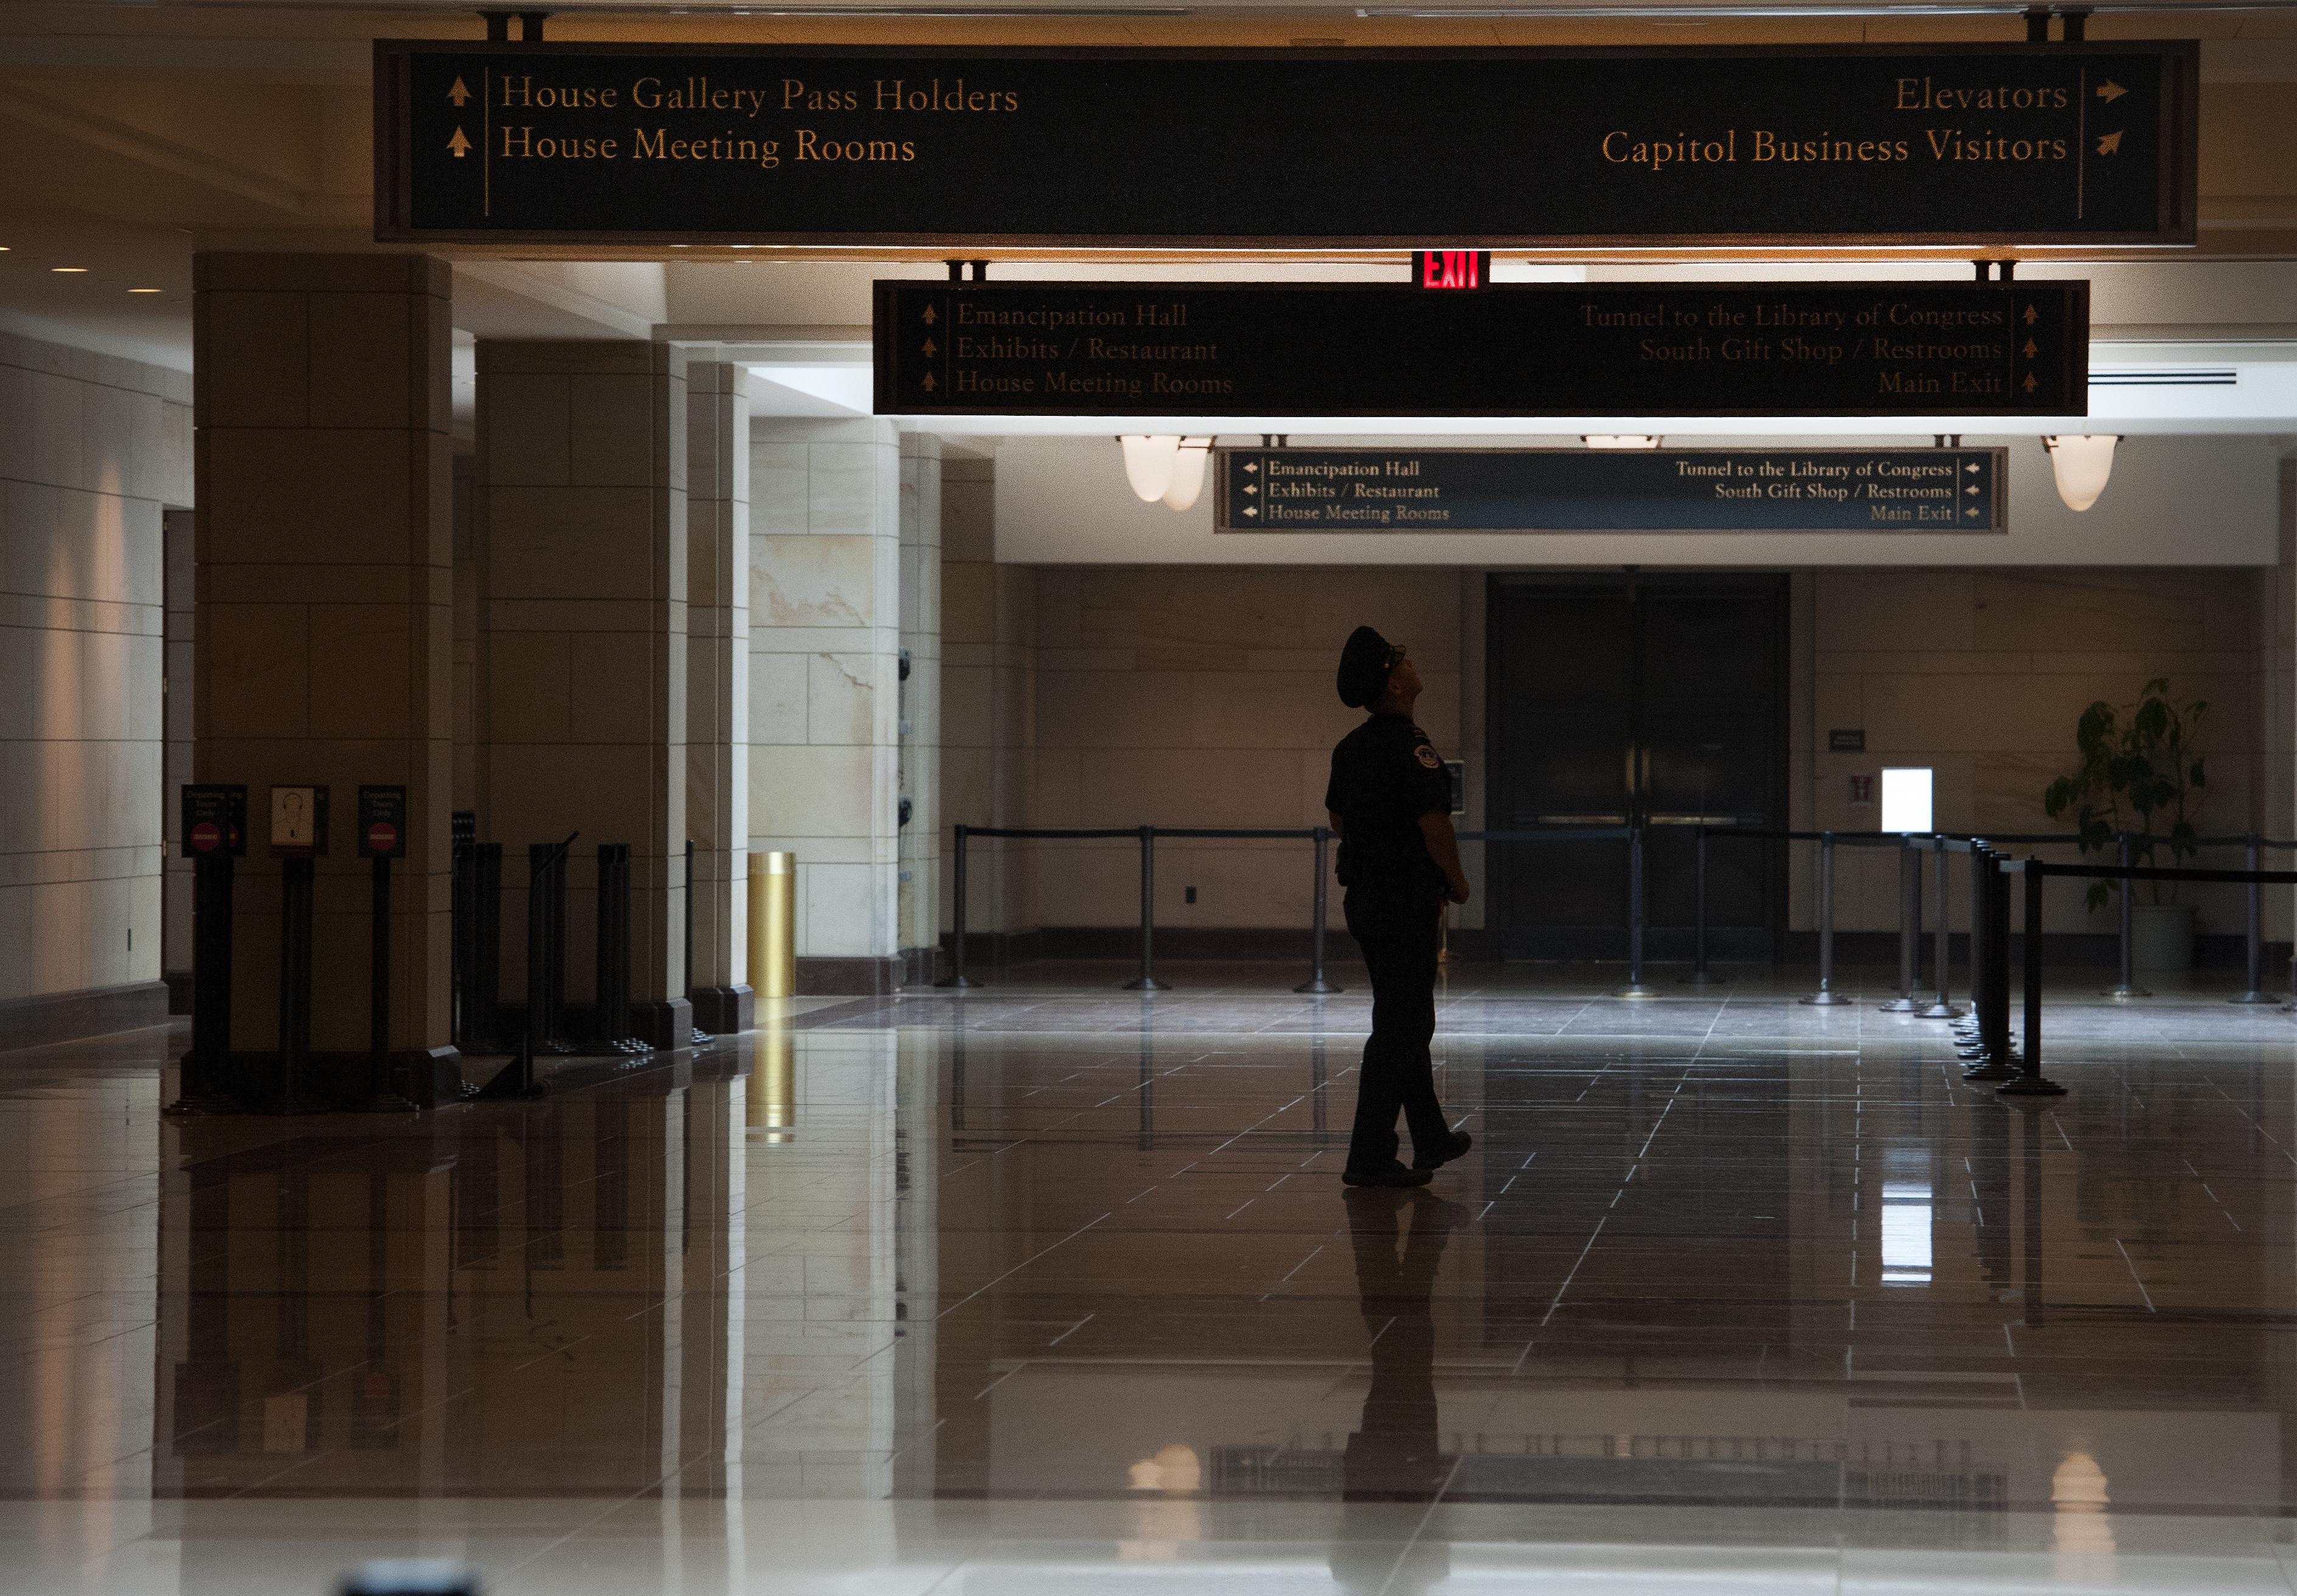 United States Capitol Hill policemen stand guard in an empty Capitol Visitors Center on  October 7, 2013, the 7th day of the government shutdown.